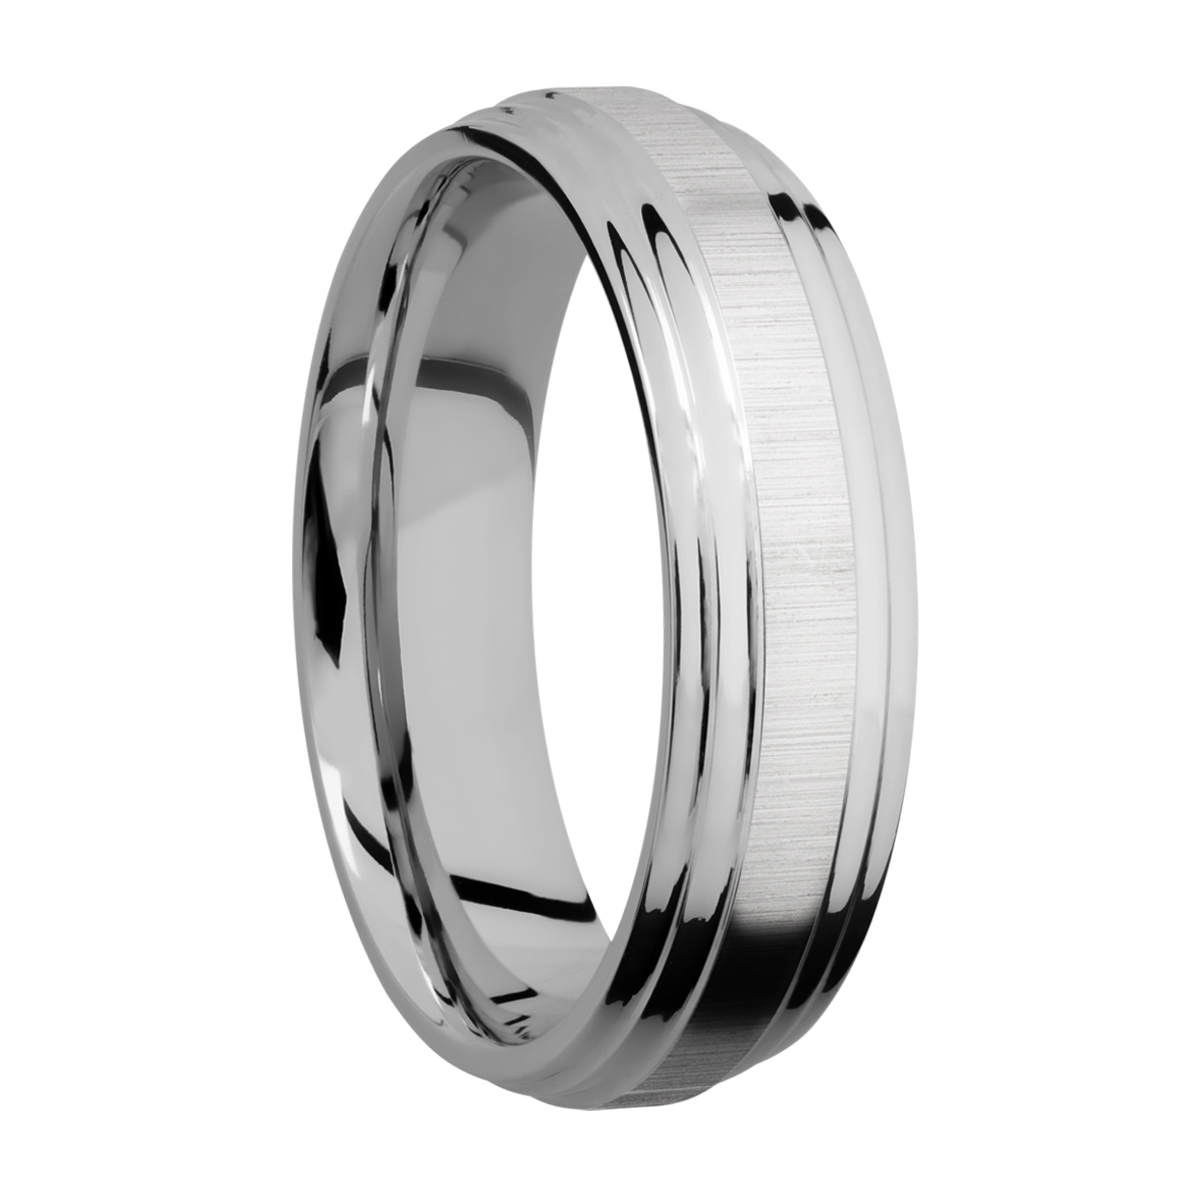 Lashbrook 6F2S Titanium Wedding Ring or Band Alternative View 1